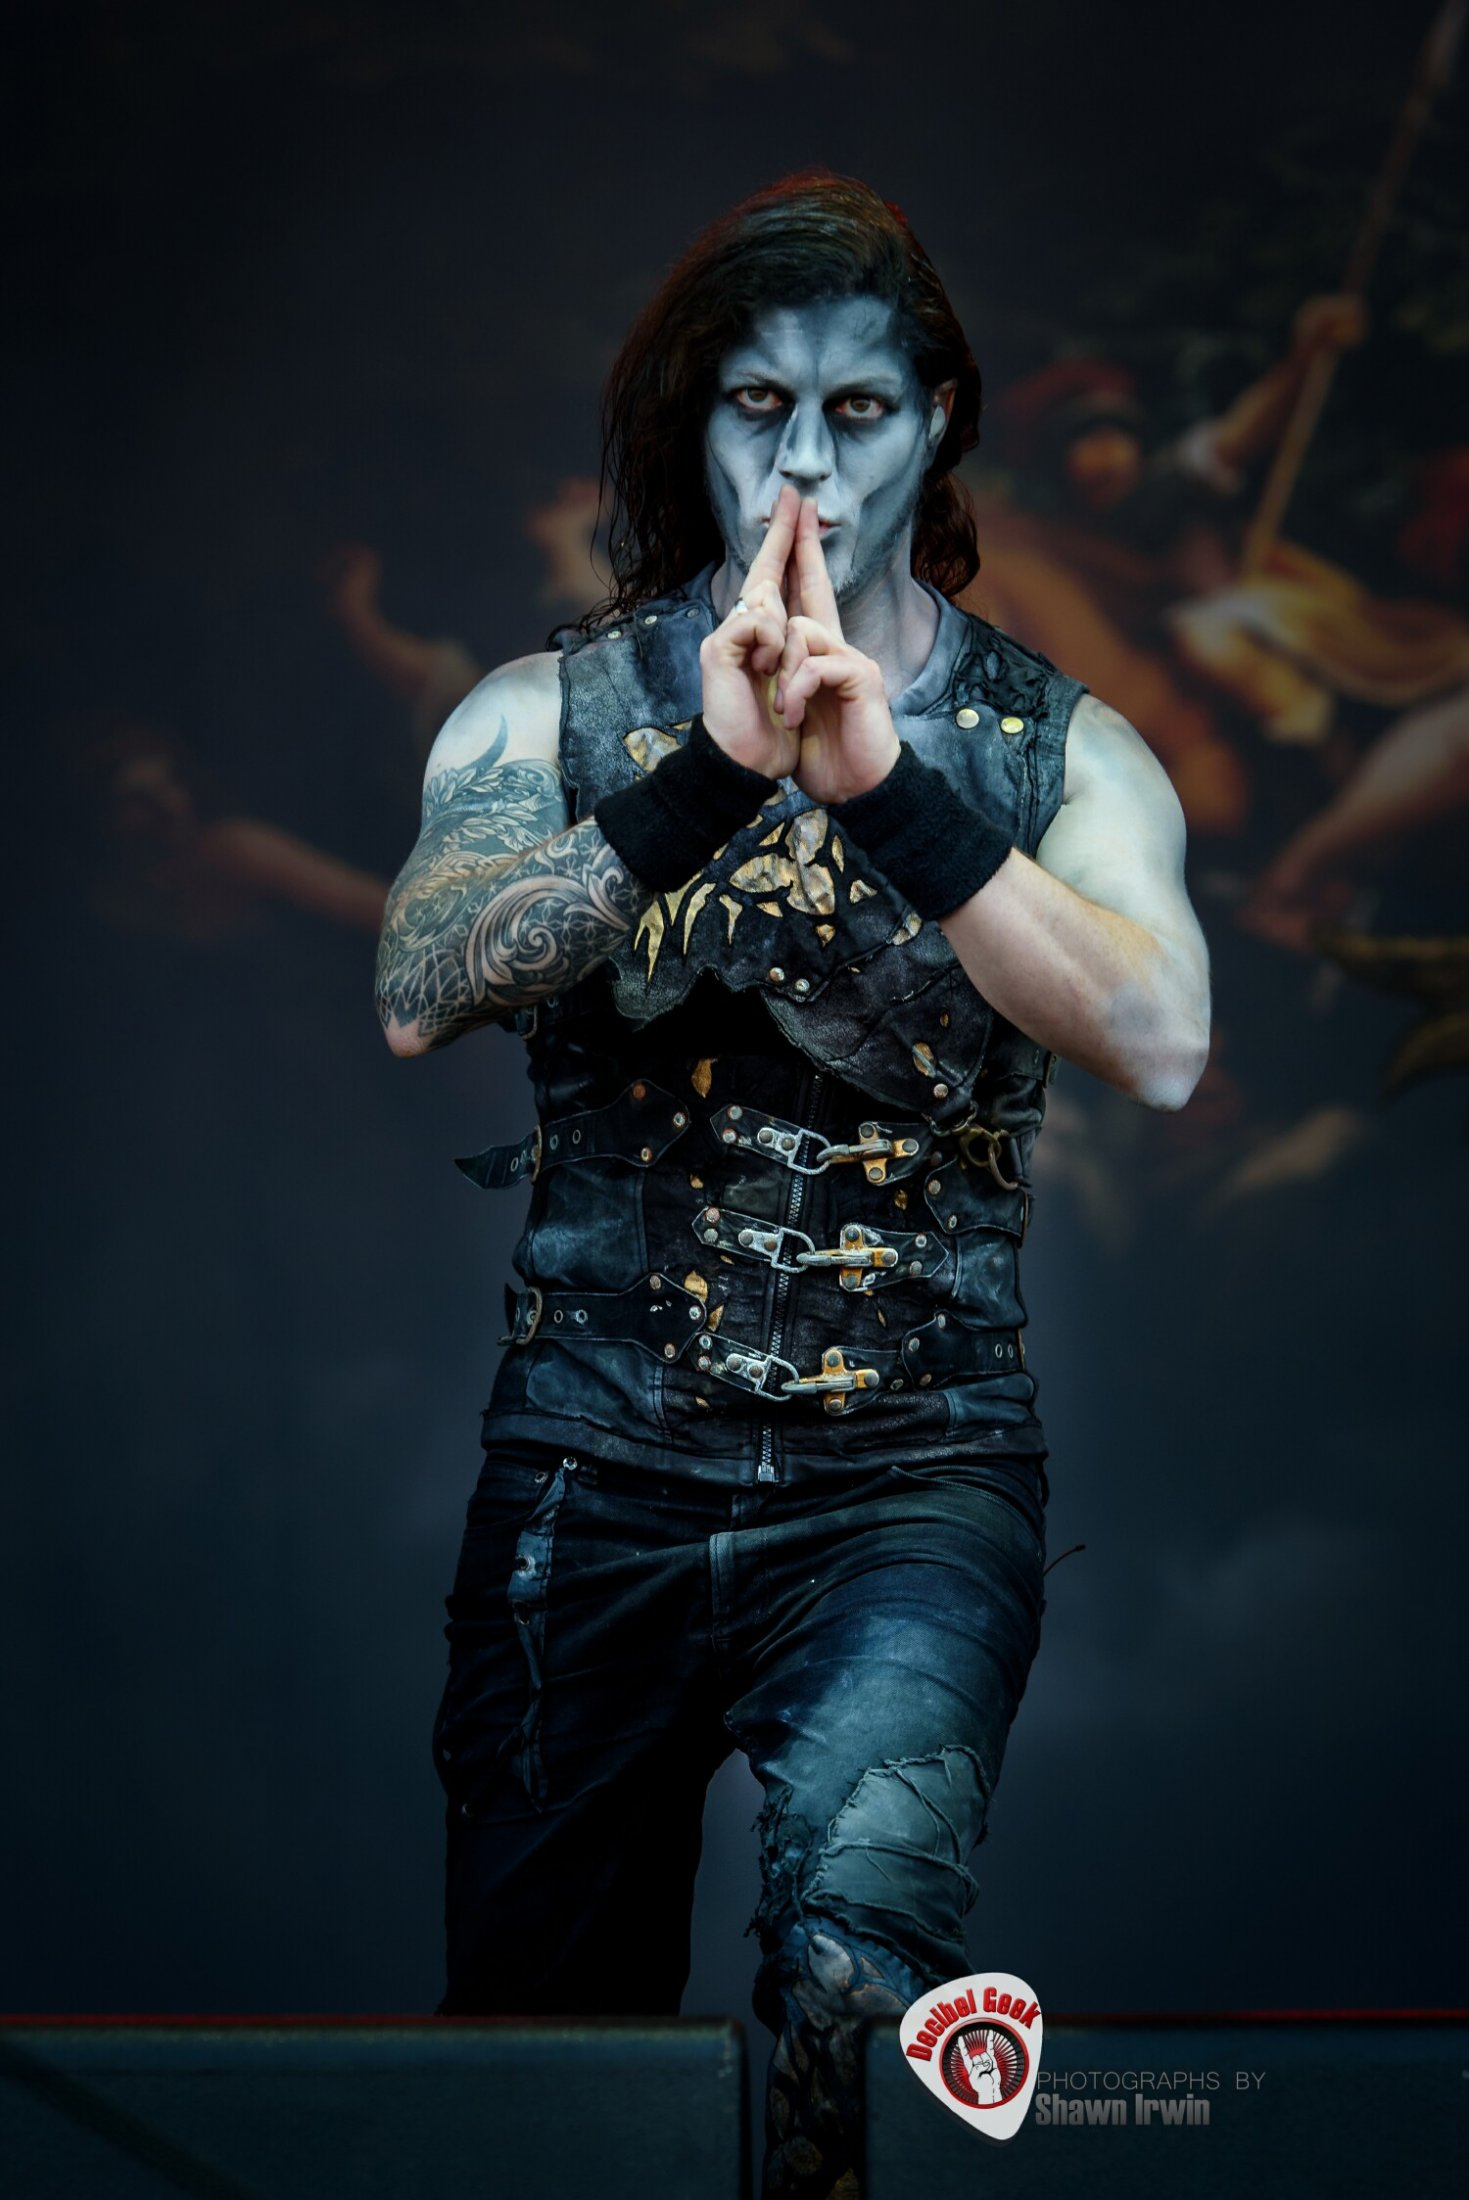 Powerwolf #34-SRF 2019-Shawn Irwin